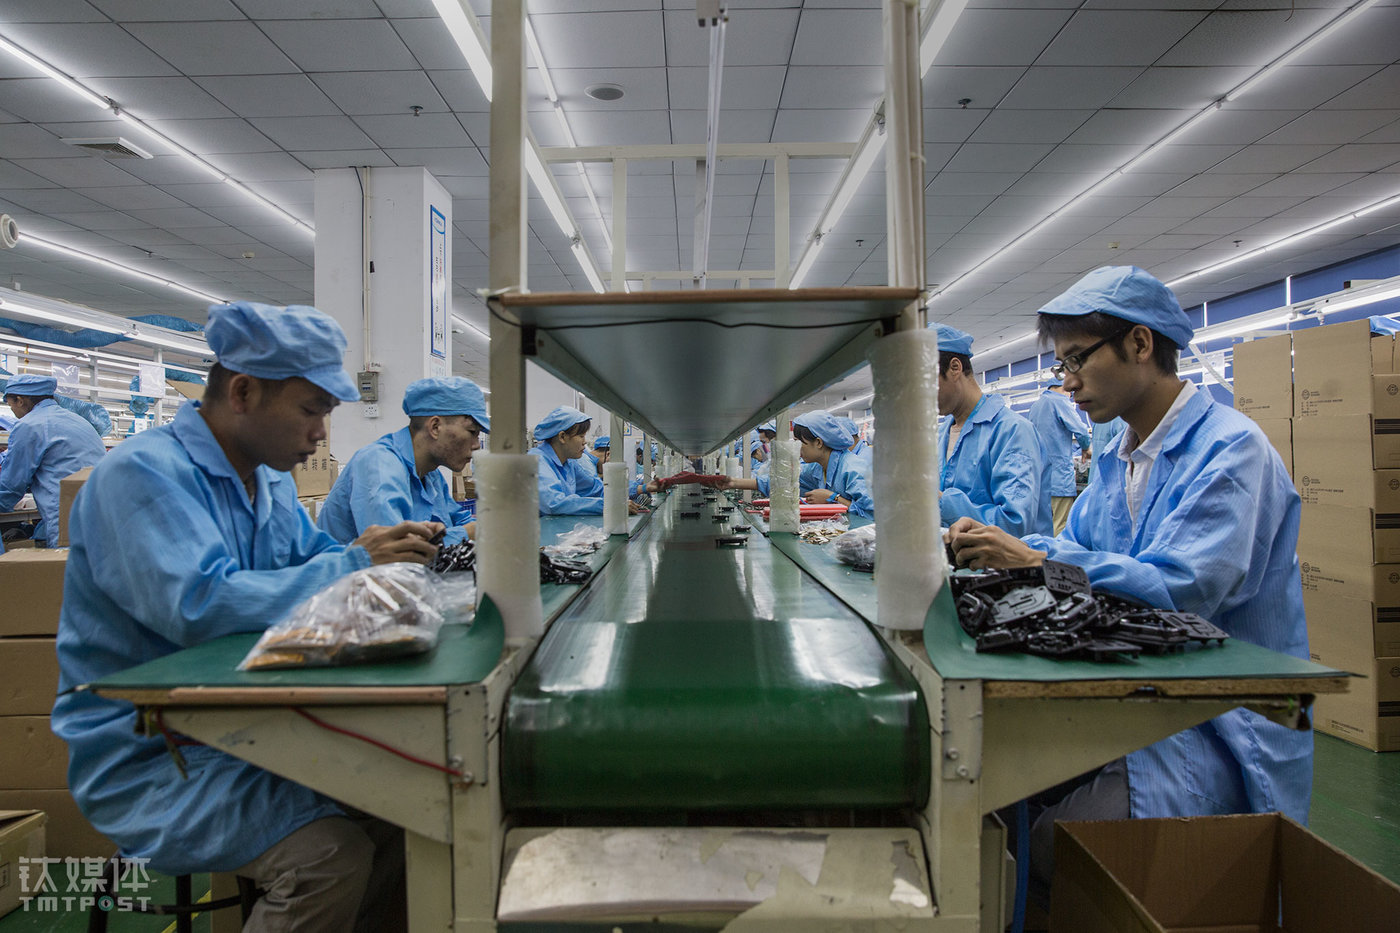 The factory's 200-something employees at the assembly lines are mostly millennials. There are even a few 16 or 17 years old workers working at the assembly line. The workers work 22 days per month and eight hours every day. The salary is not high. The base monthly pay is only ¥2,130. As for the overtime pay, it's counted as ¥18.36 per extra hour from Monday to Friday, and ¥24.8 per hour on weekends. Technicians that are responsible for more technical functions such as soldering, QC testing etc. would be able to get an occupational subsidy of around ¥200. Therefore, the salary of the workers varies from ¥3000 to ¥6000 every month, depending on the order volume the factory receives.